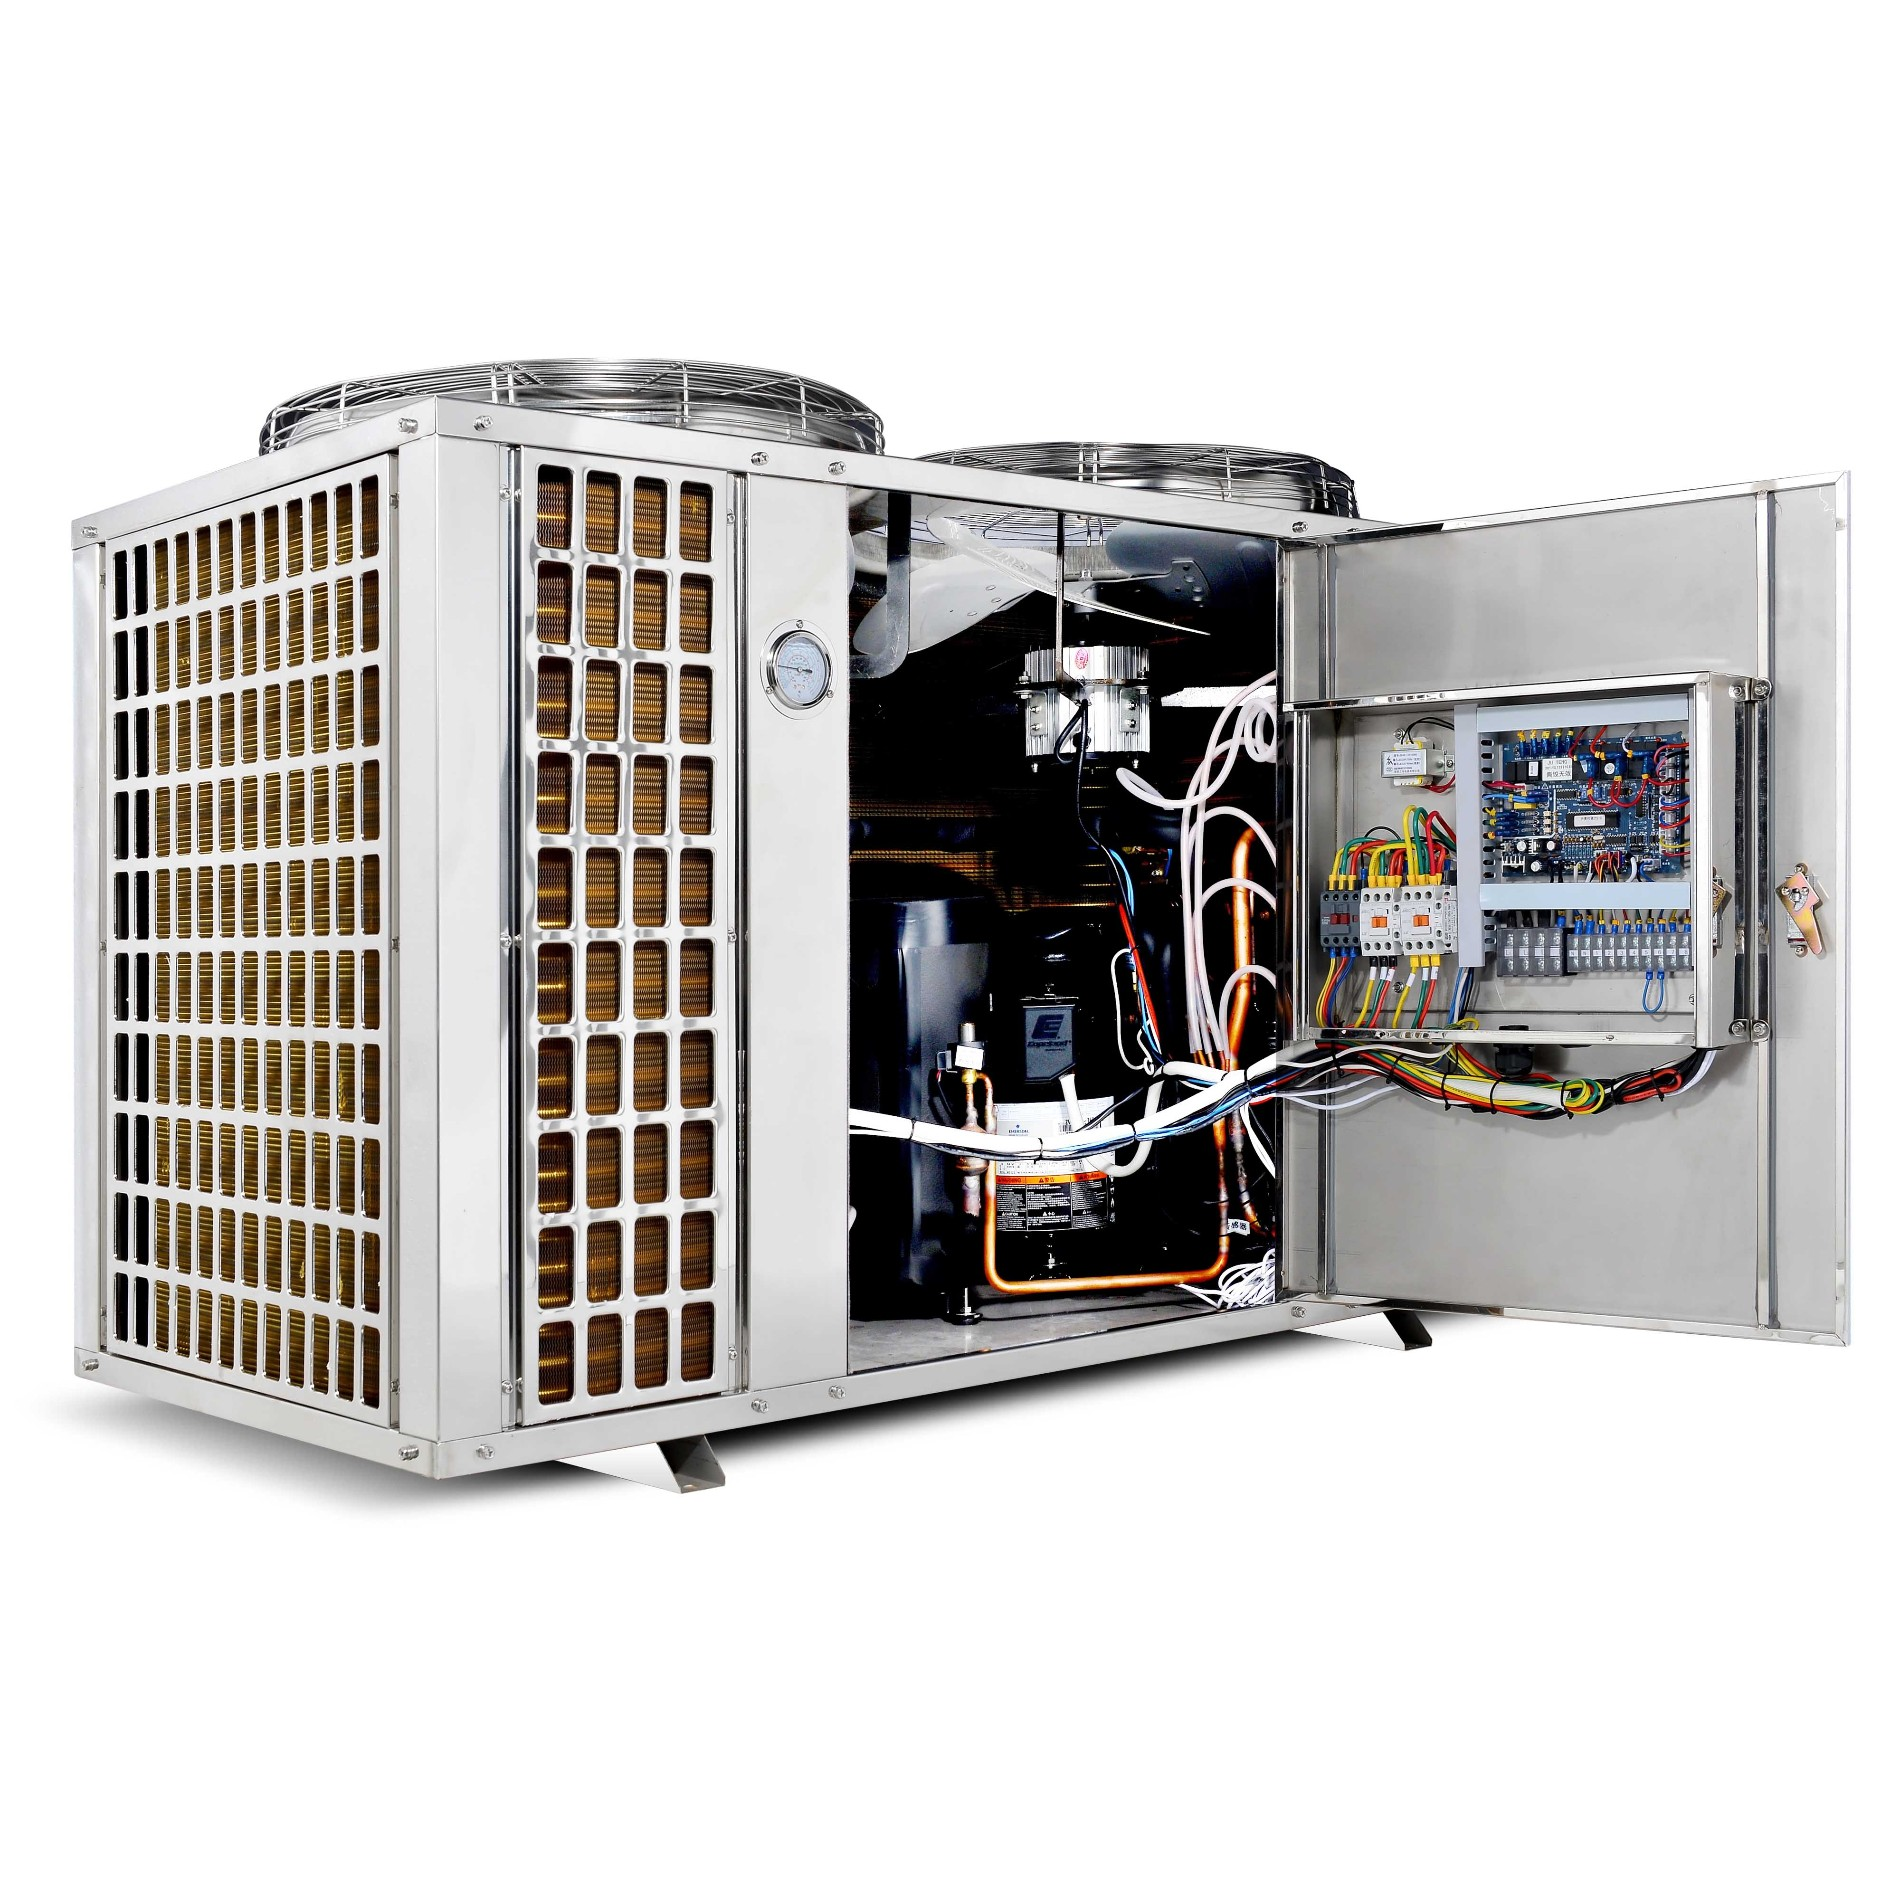 High quality energy saving techology  Air To Water Inverter Heater Quotes,China heat pump equipment Air To Water Inverter Heater Factory, pump equipmentAir To Water Inverter Heater Purchasing